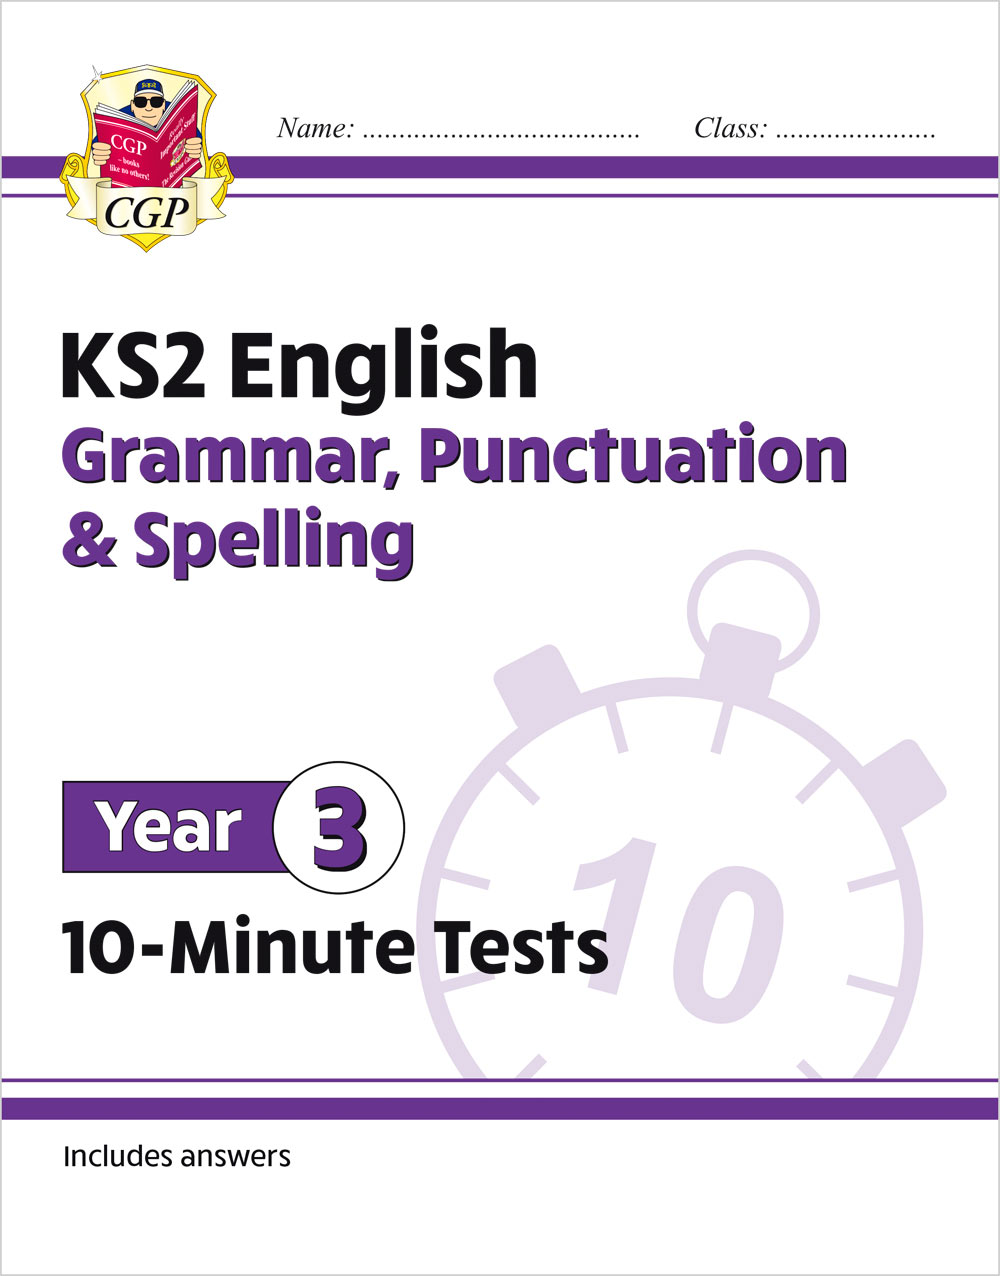 E3GXP21 - New KS2 English 10-Minute Tests: Grammar, Punctuation & Spelling - Year 3